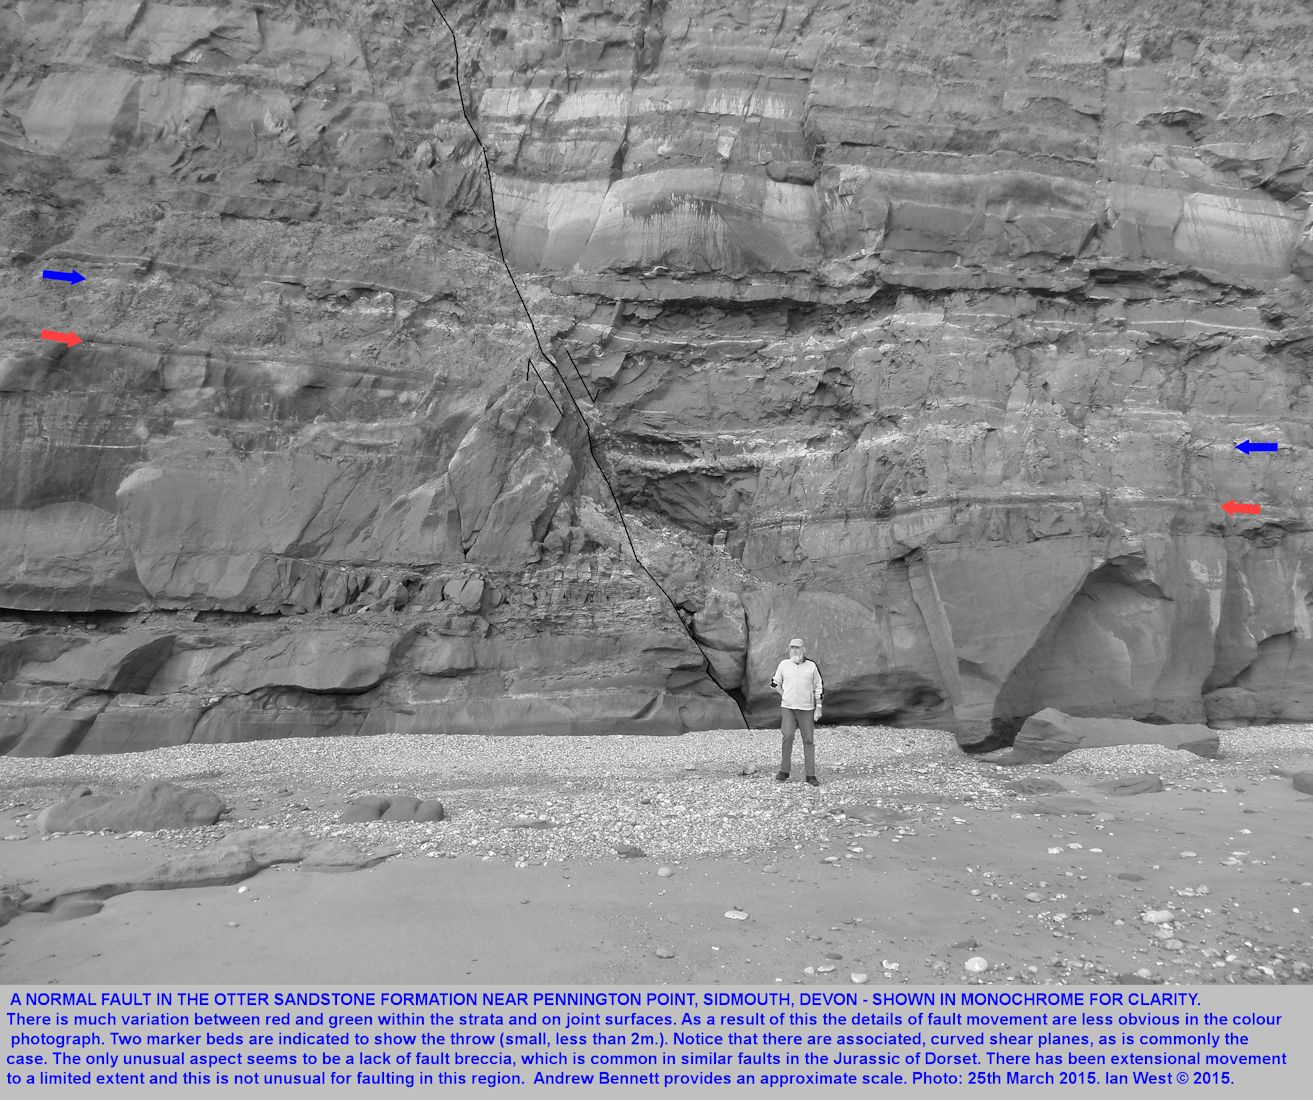 An extensional, normal fault near Pennington Point, east of Sidmouth sea front, Devon, 25th March 2015,monchrome version